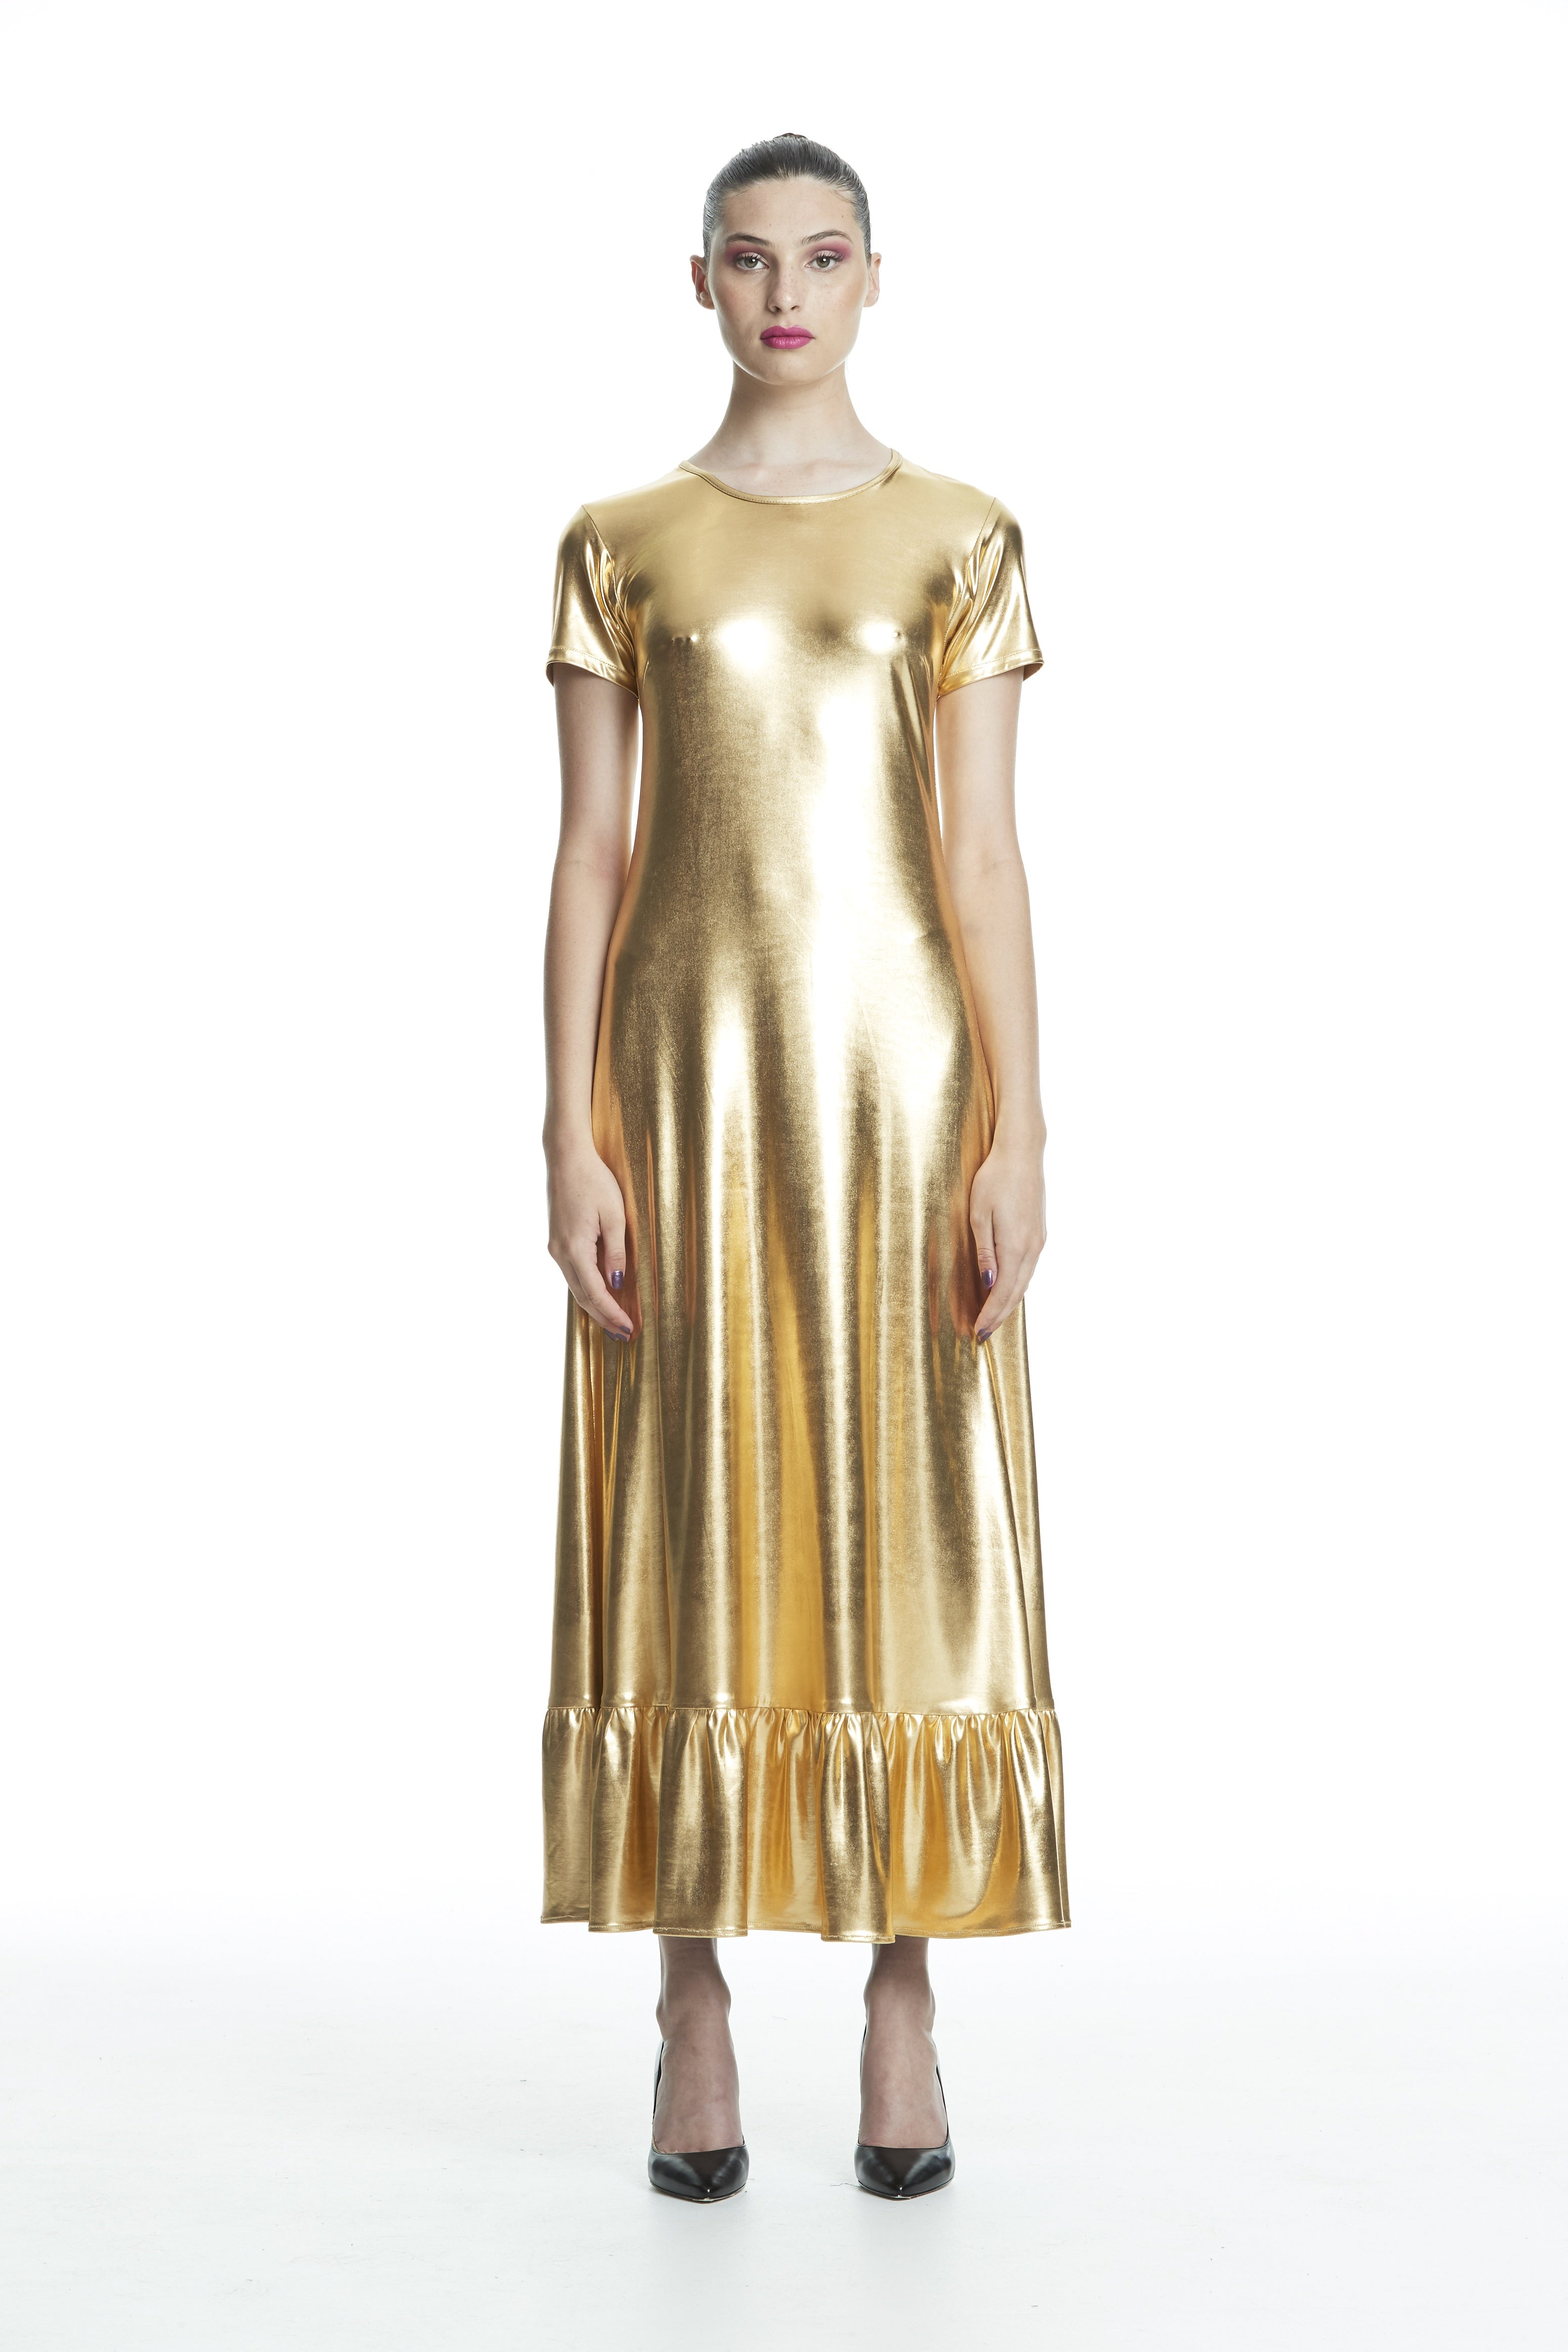 WORLD 4469 Cool Breeze Dress Gold Metallic